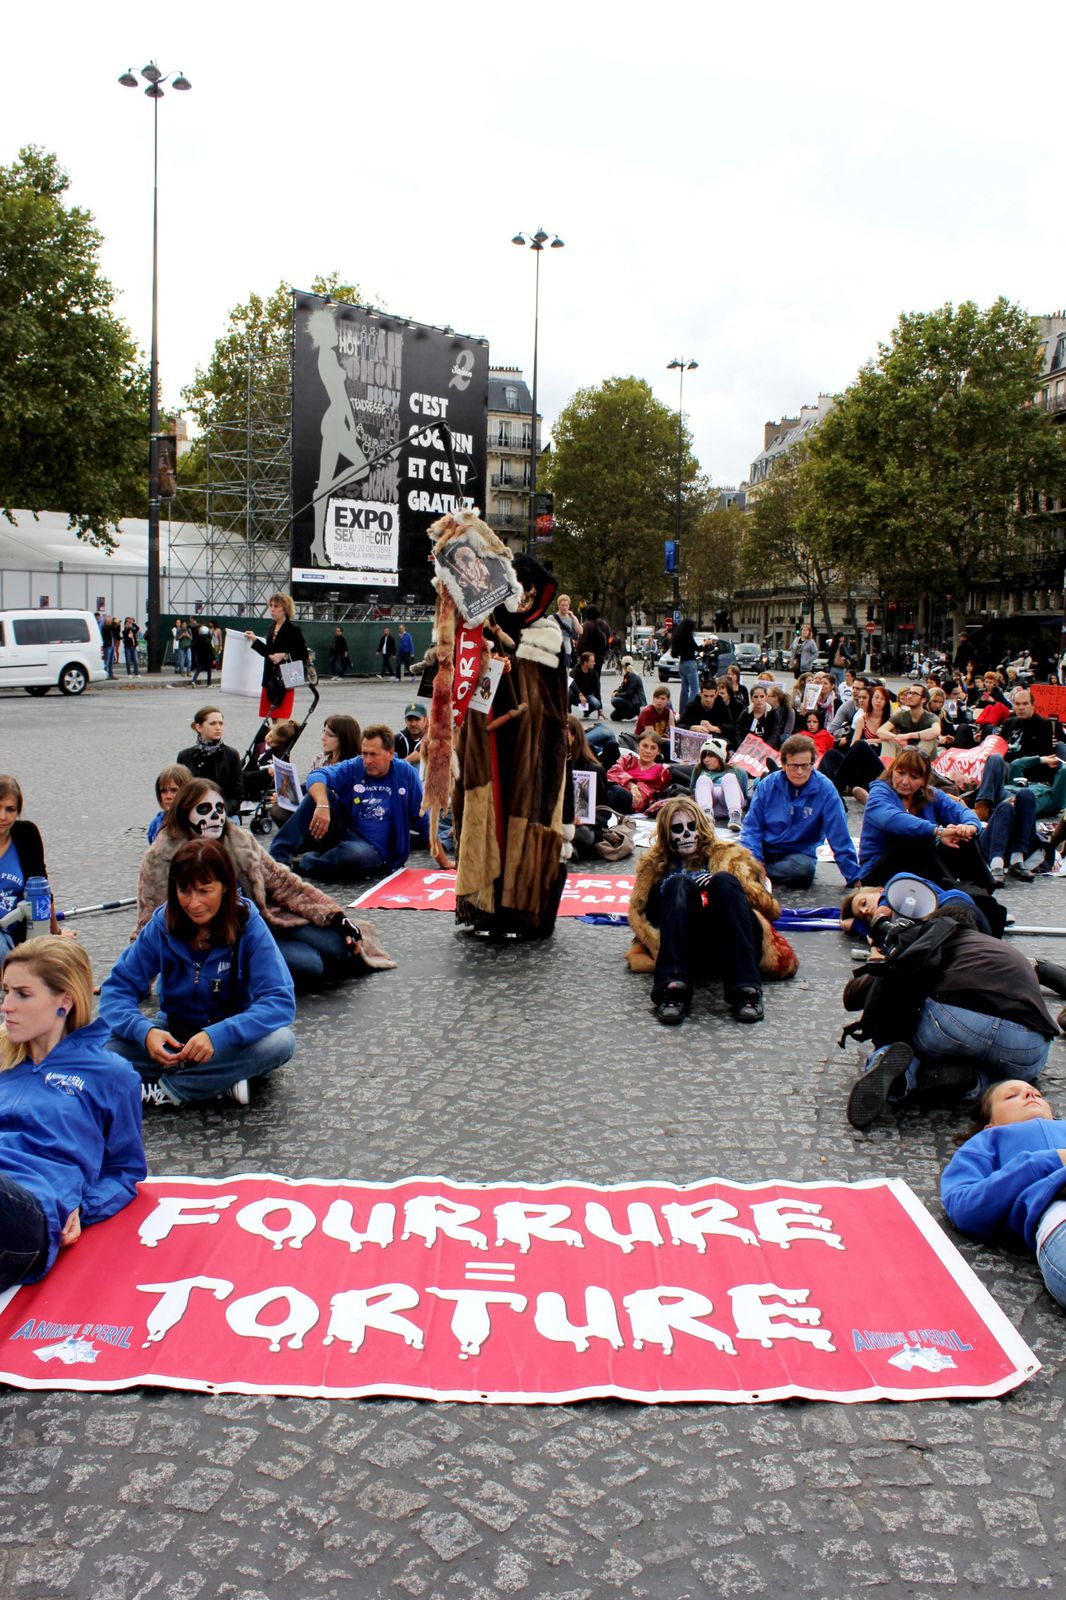 Manifestation anti fourrure le 5 octobre, Paris